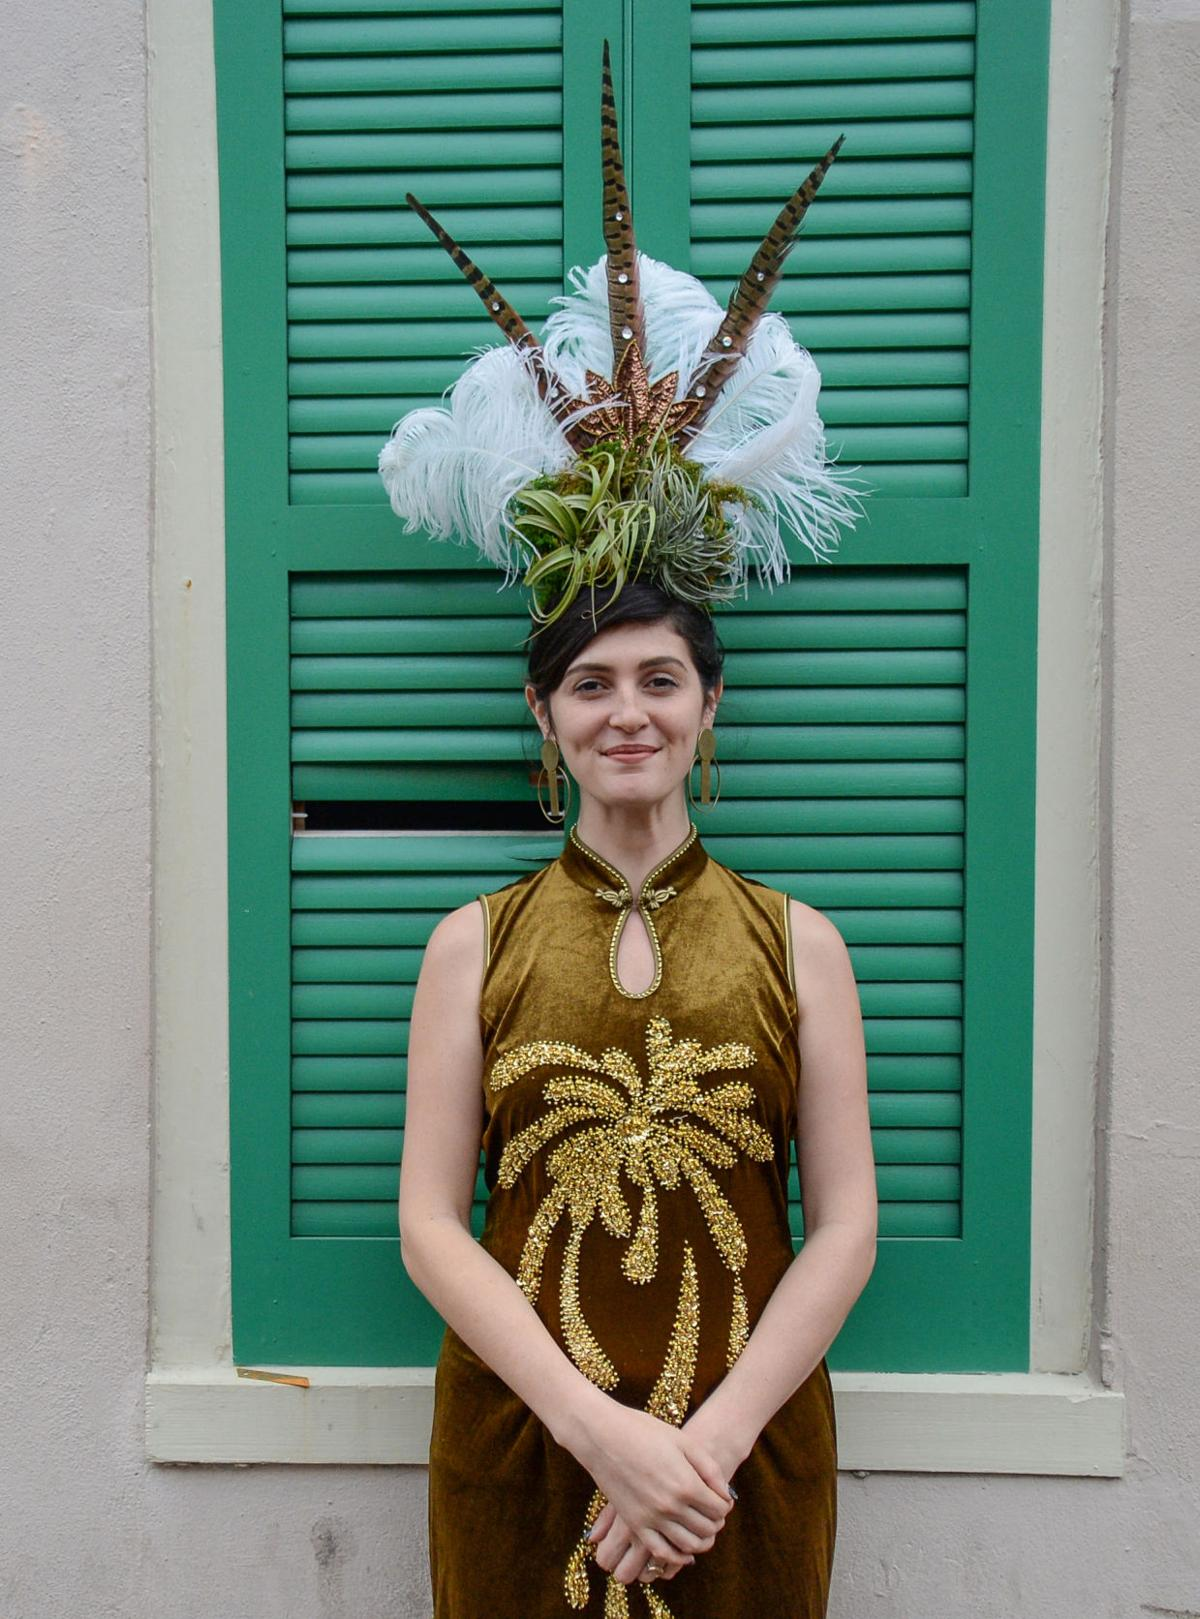 Happy Mardi Grow? Air plant headdresses sprout up as latest in ...